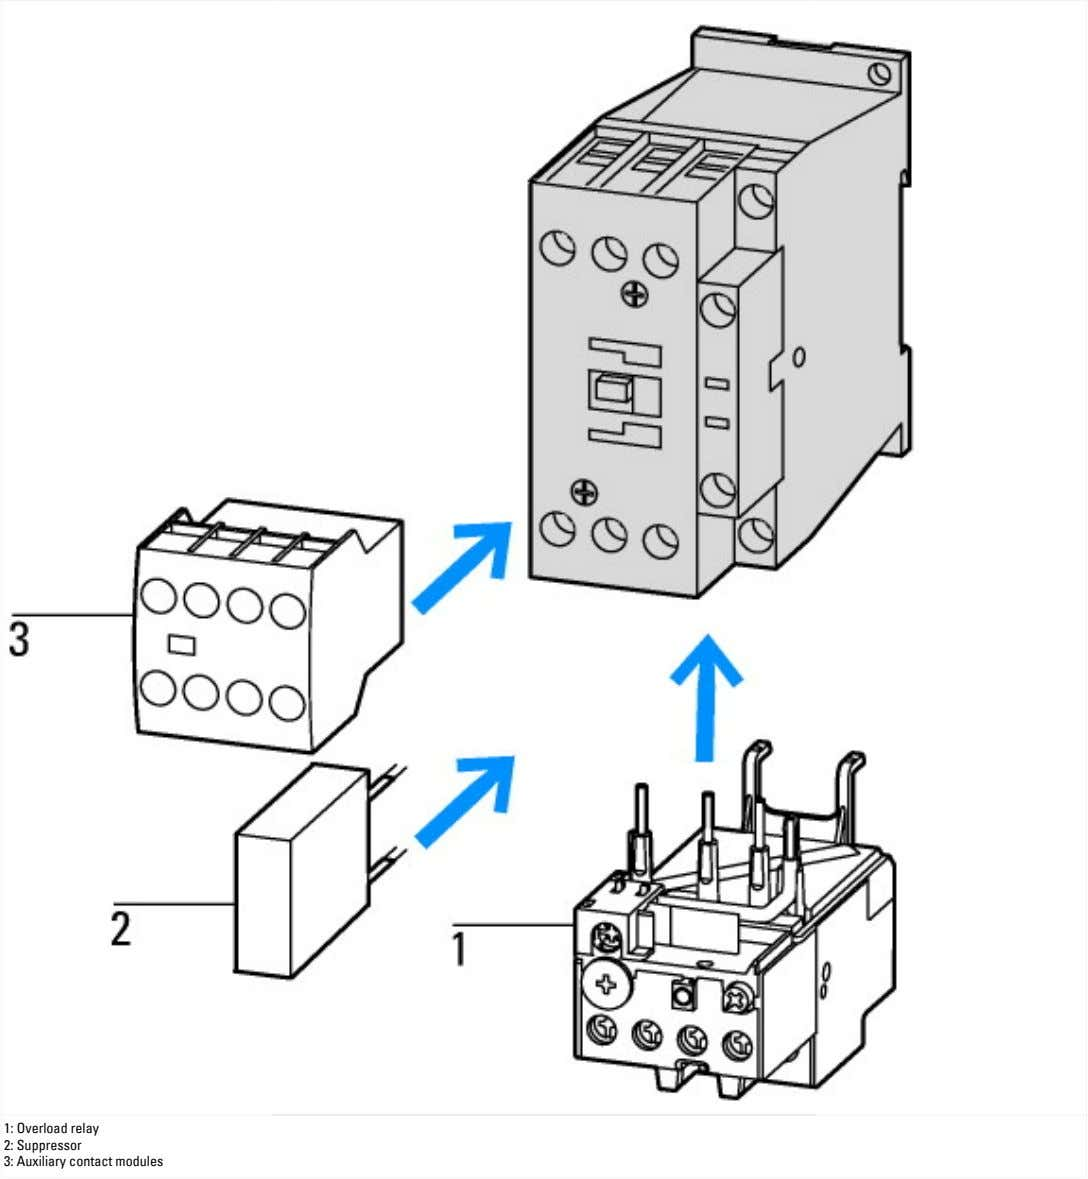 1: Overload relay 2: Suppressor 3: Auxiliary contact modules